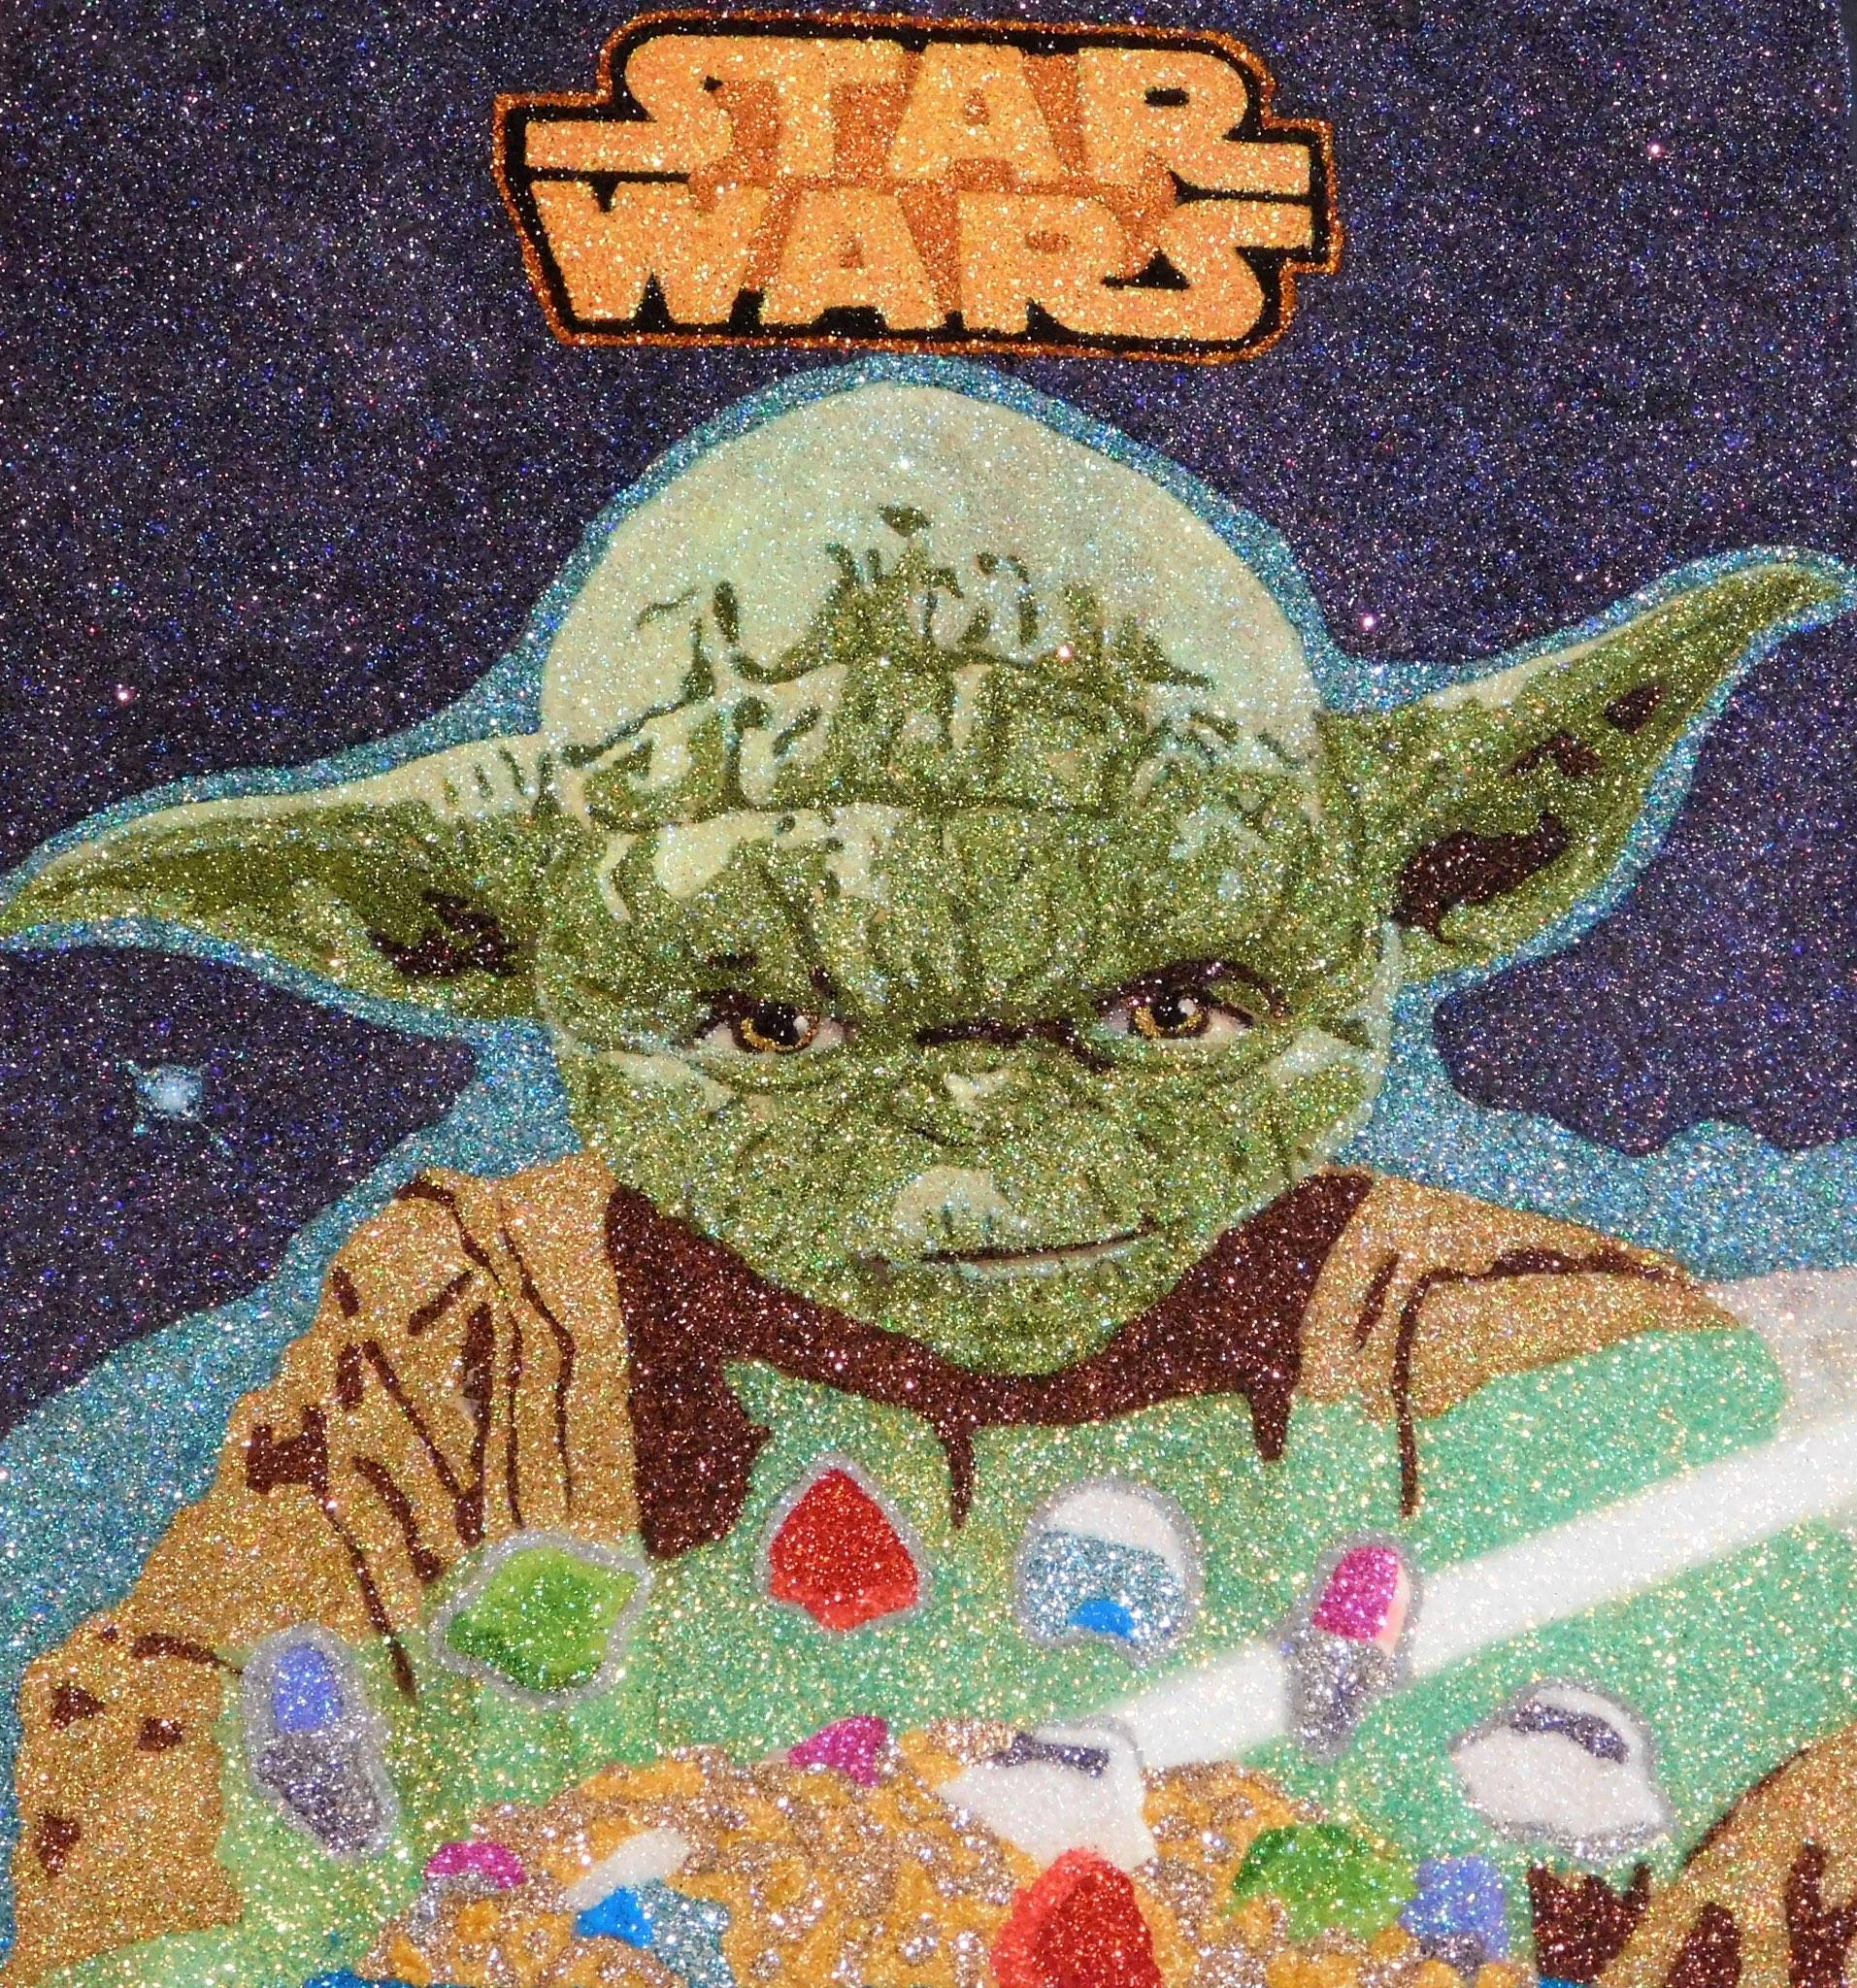 Glitter Pop Art Yoda Cereal Box